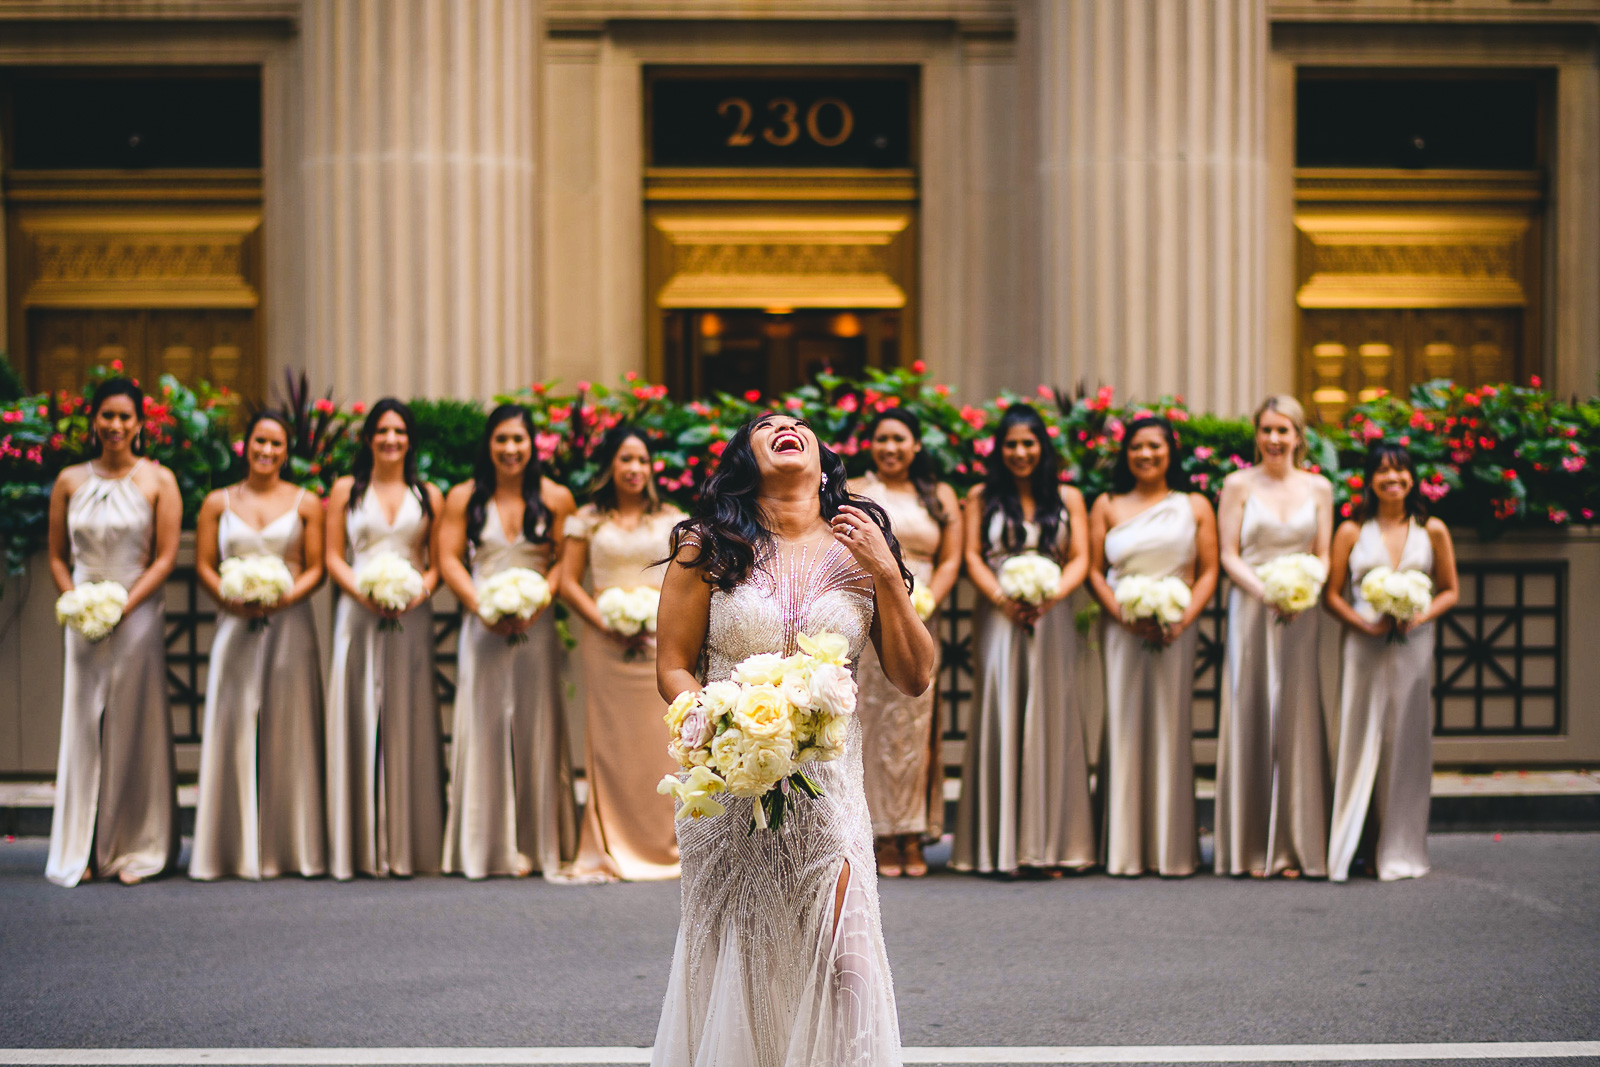 62 renaissance hotel chicago wedding photos - Renaissance Hotel Chicago Wedding Photos // Francine + RJ